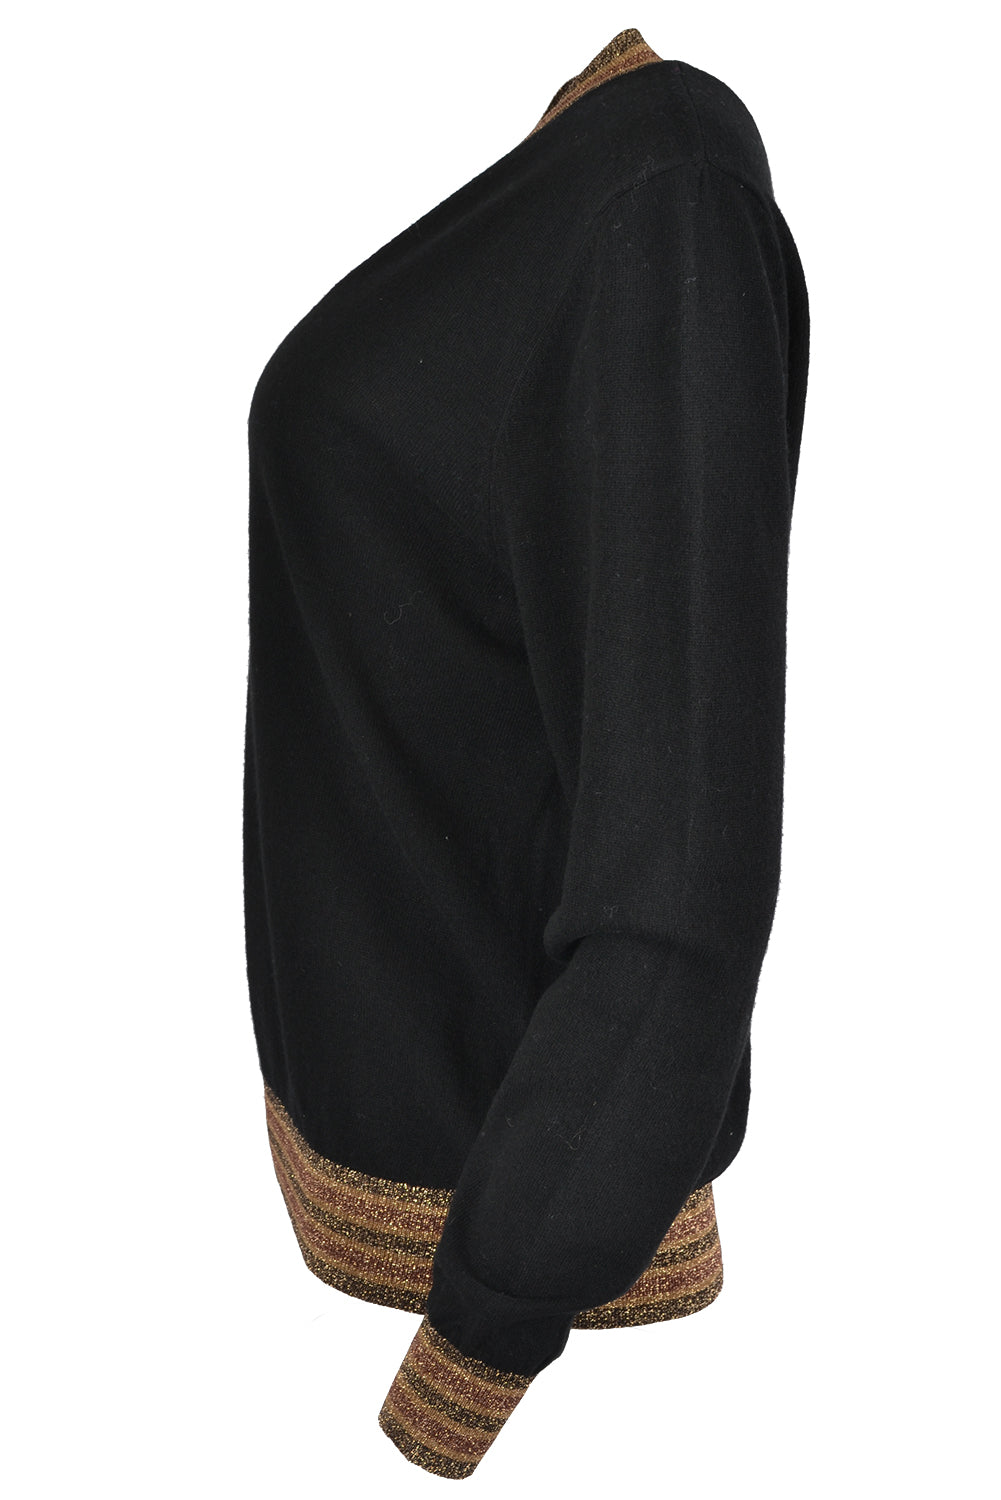 Jeff LULU Bicolour Lurex V Neck Sweater Black